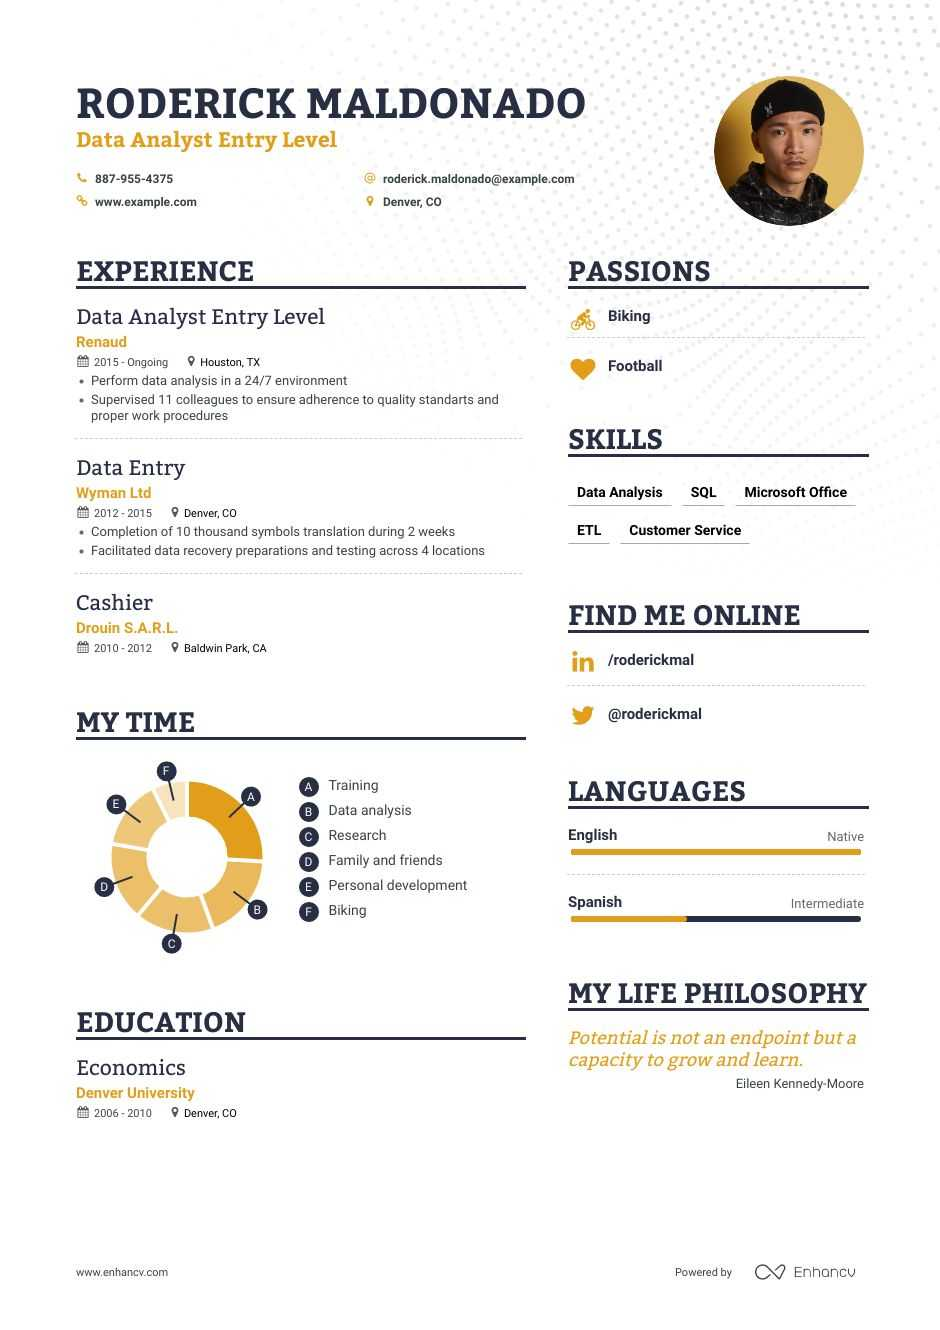 data analyst entry level resume examples inside to tips enhancv summary for architecture Resume Data Analyst Summary For Resume